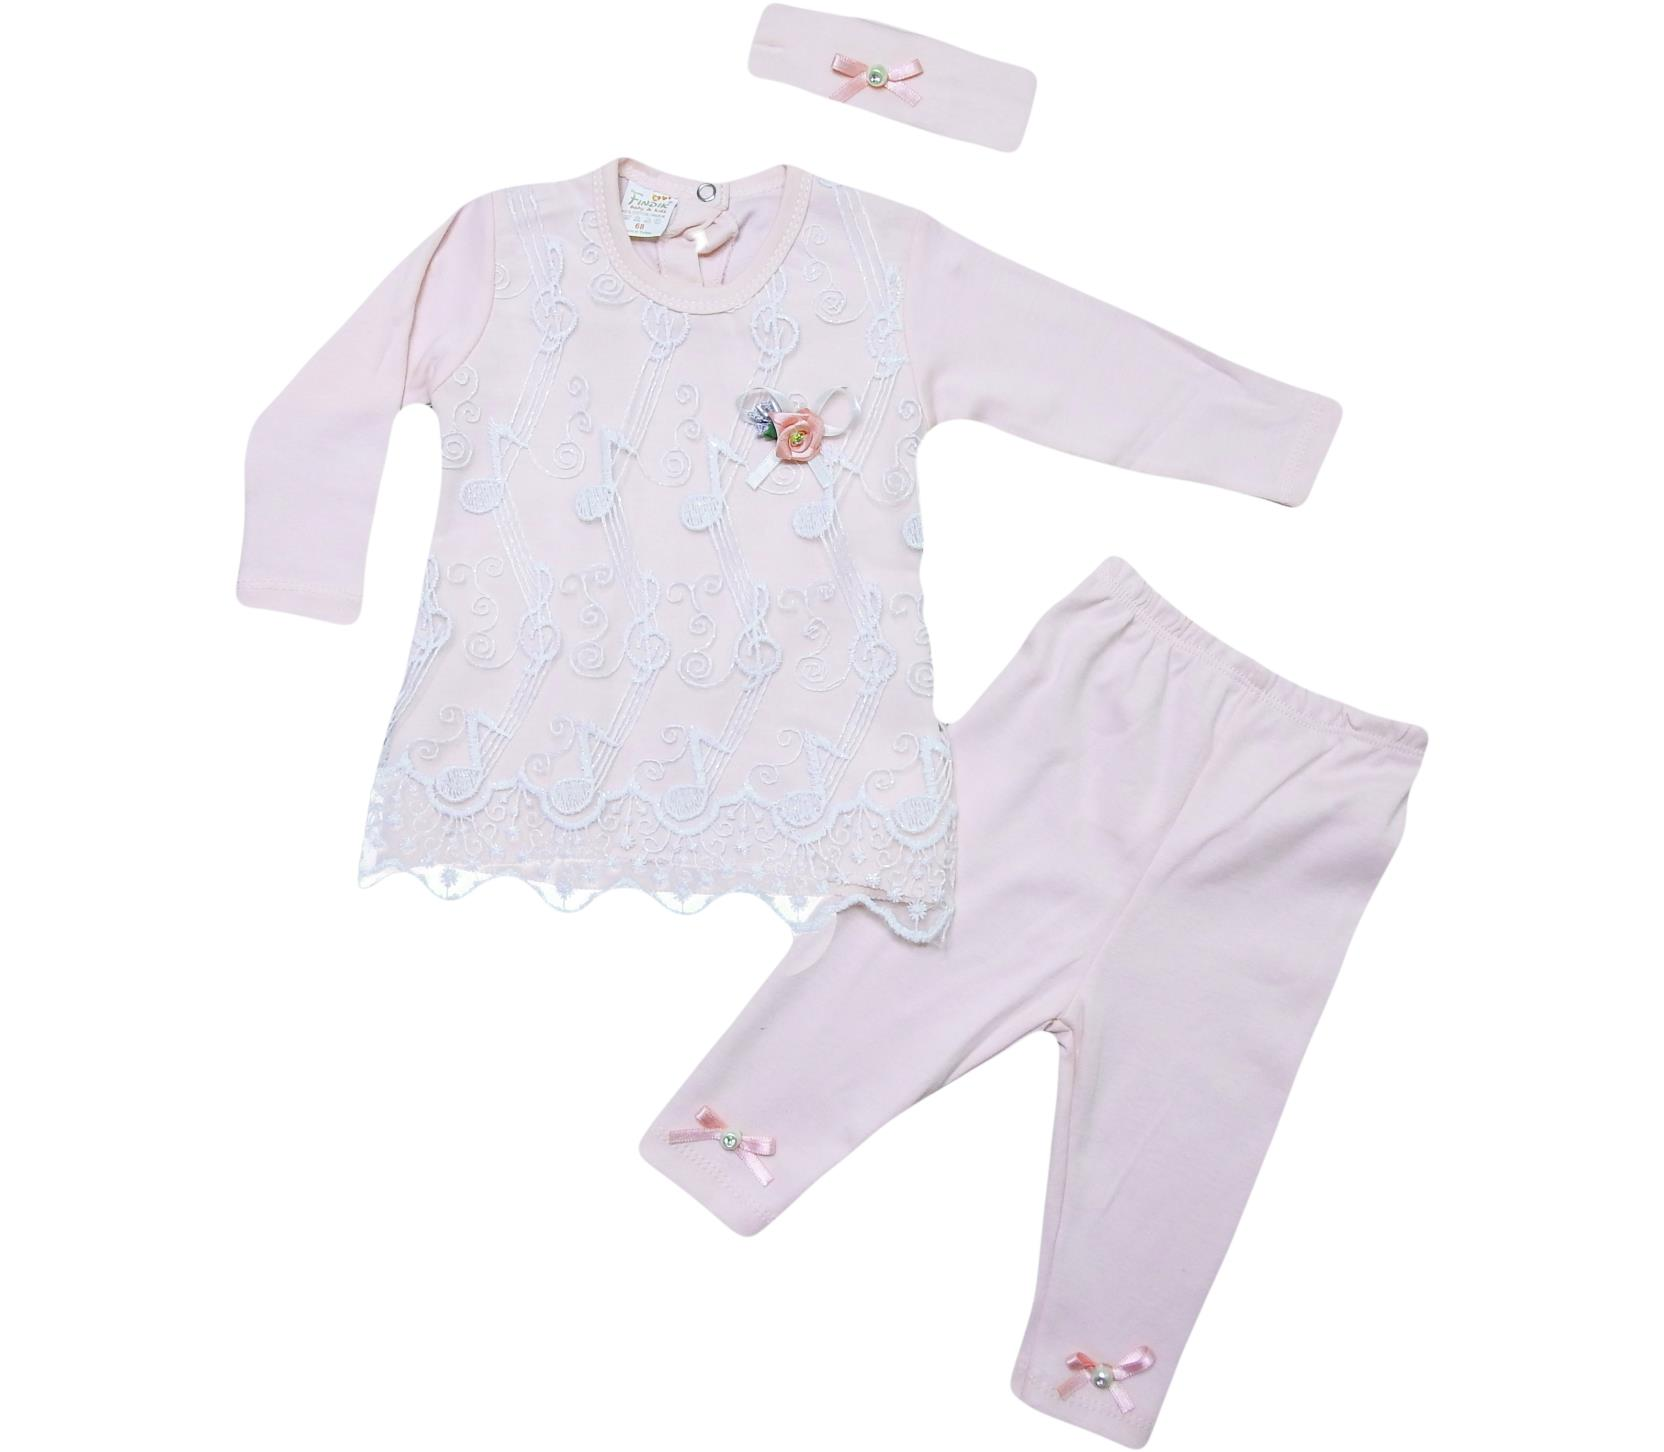 61024 Wholesale quality and cheap dress for girl babies  6-9 month